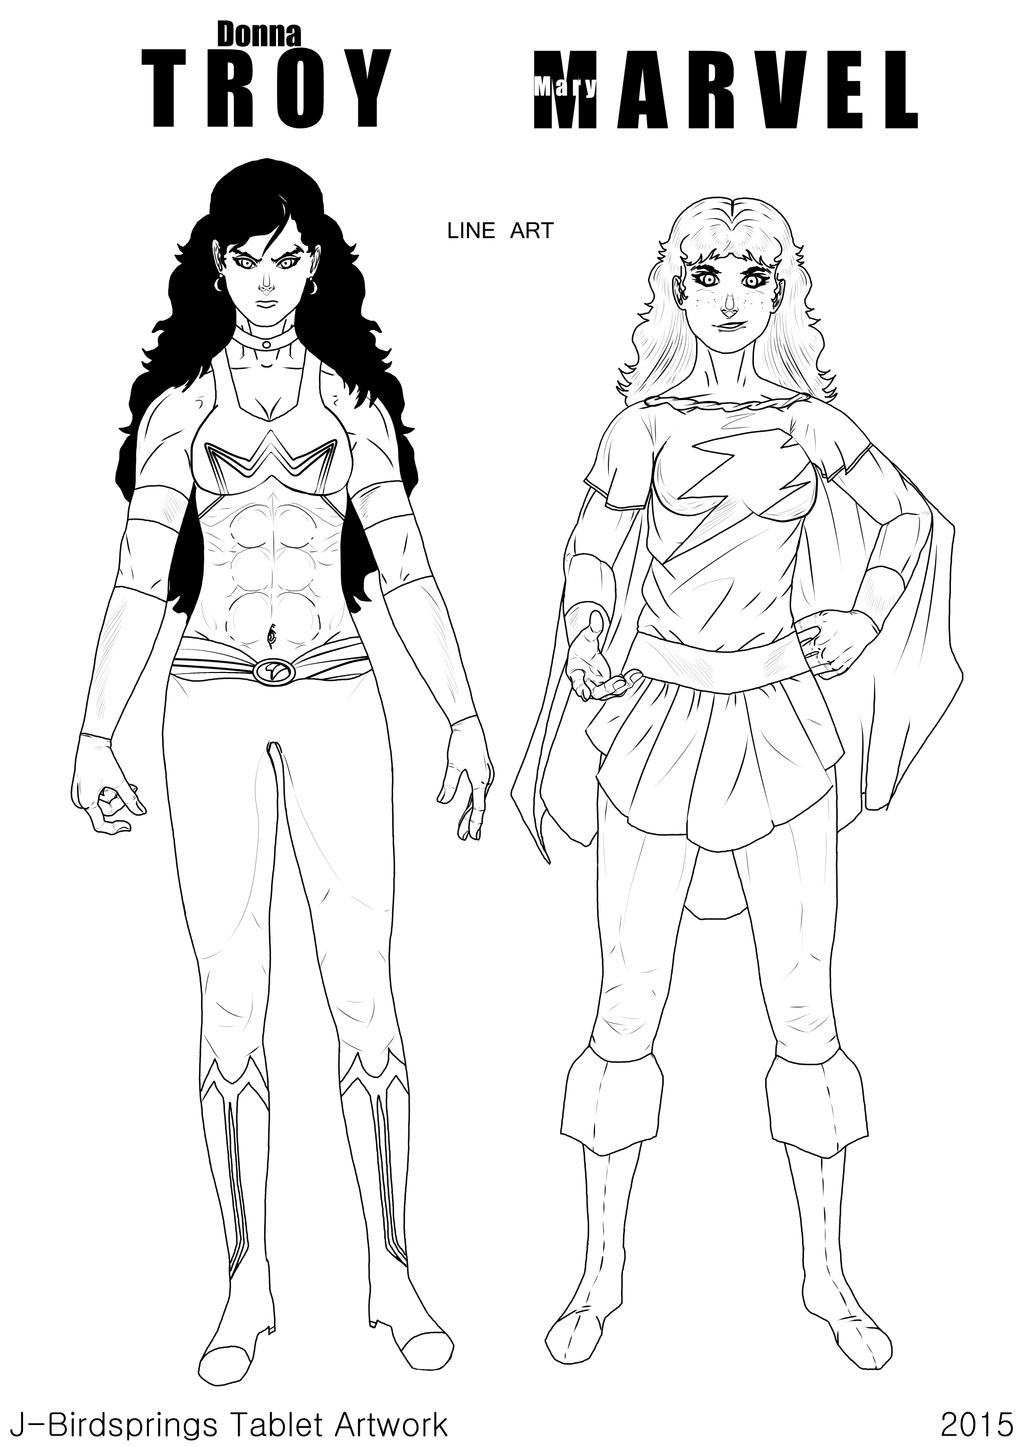 Unity Line Art Map : Era of unity donna troy and mary marvel line art by j